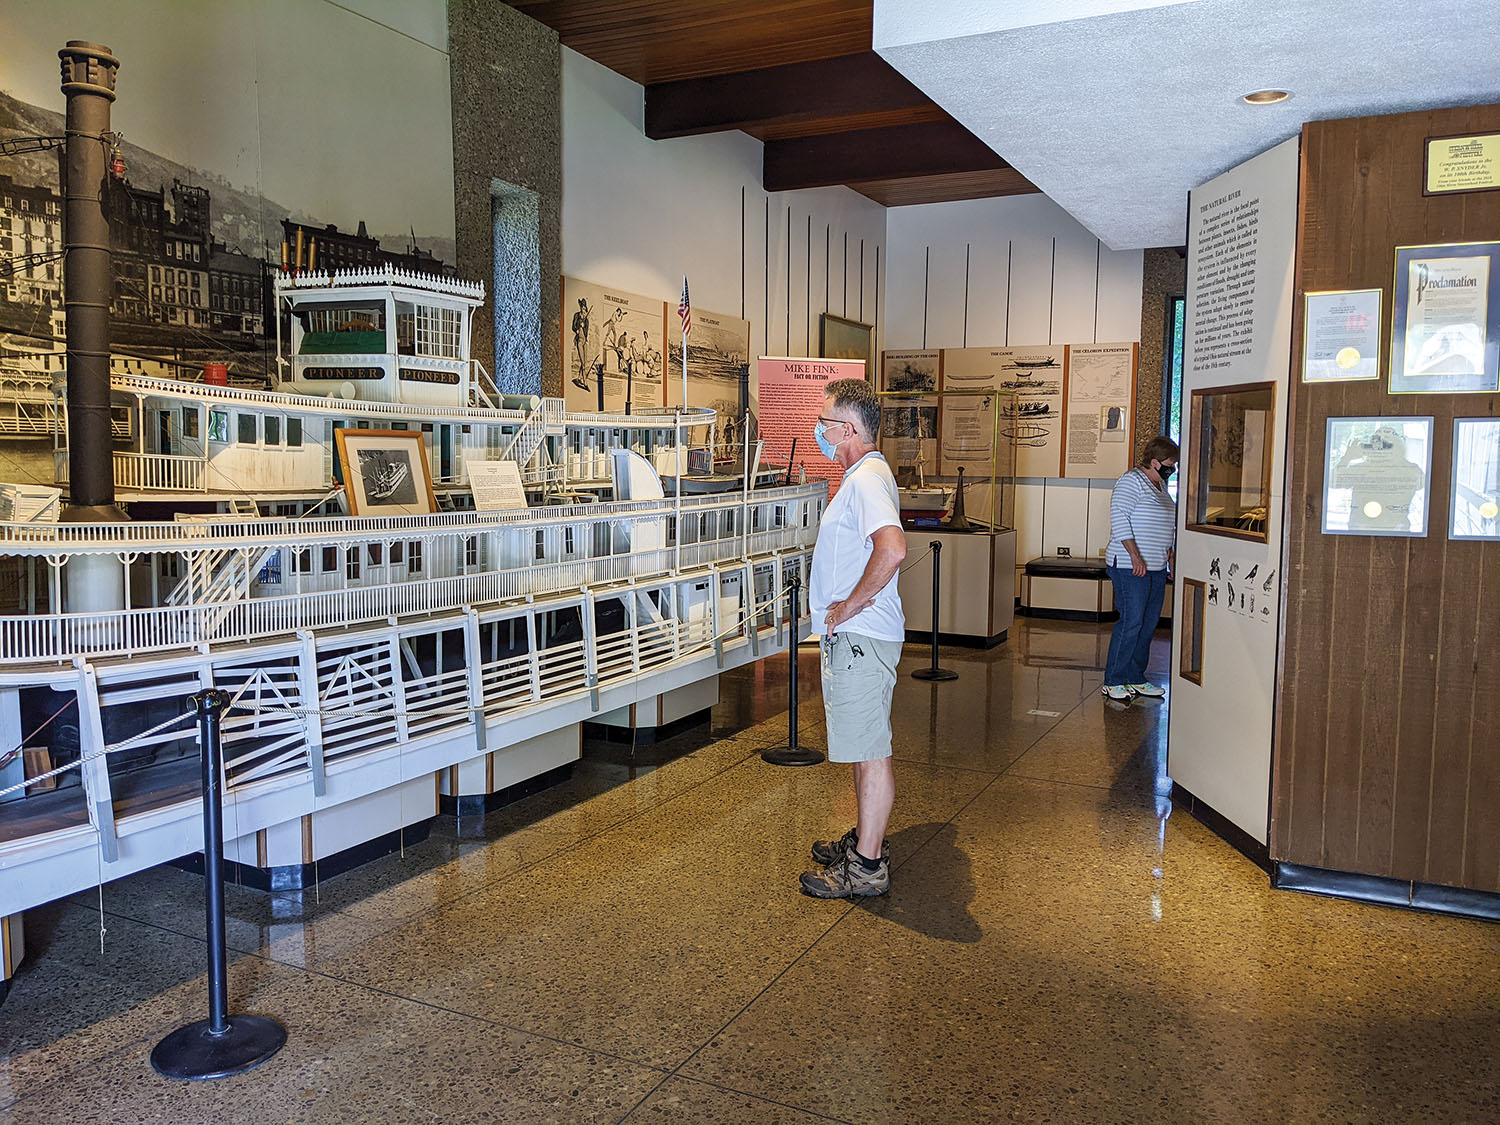 Masked visitors observe social distancing while visiting the Ohio River Museum in Marietta, Ohio. (Photo courtesy of Ohio River Museum)